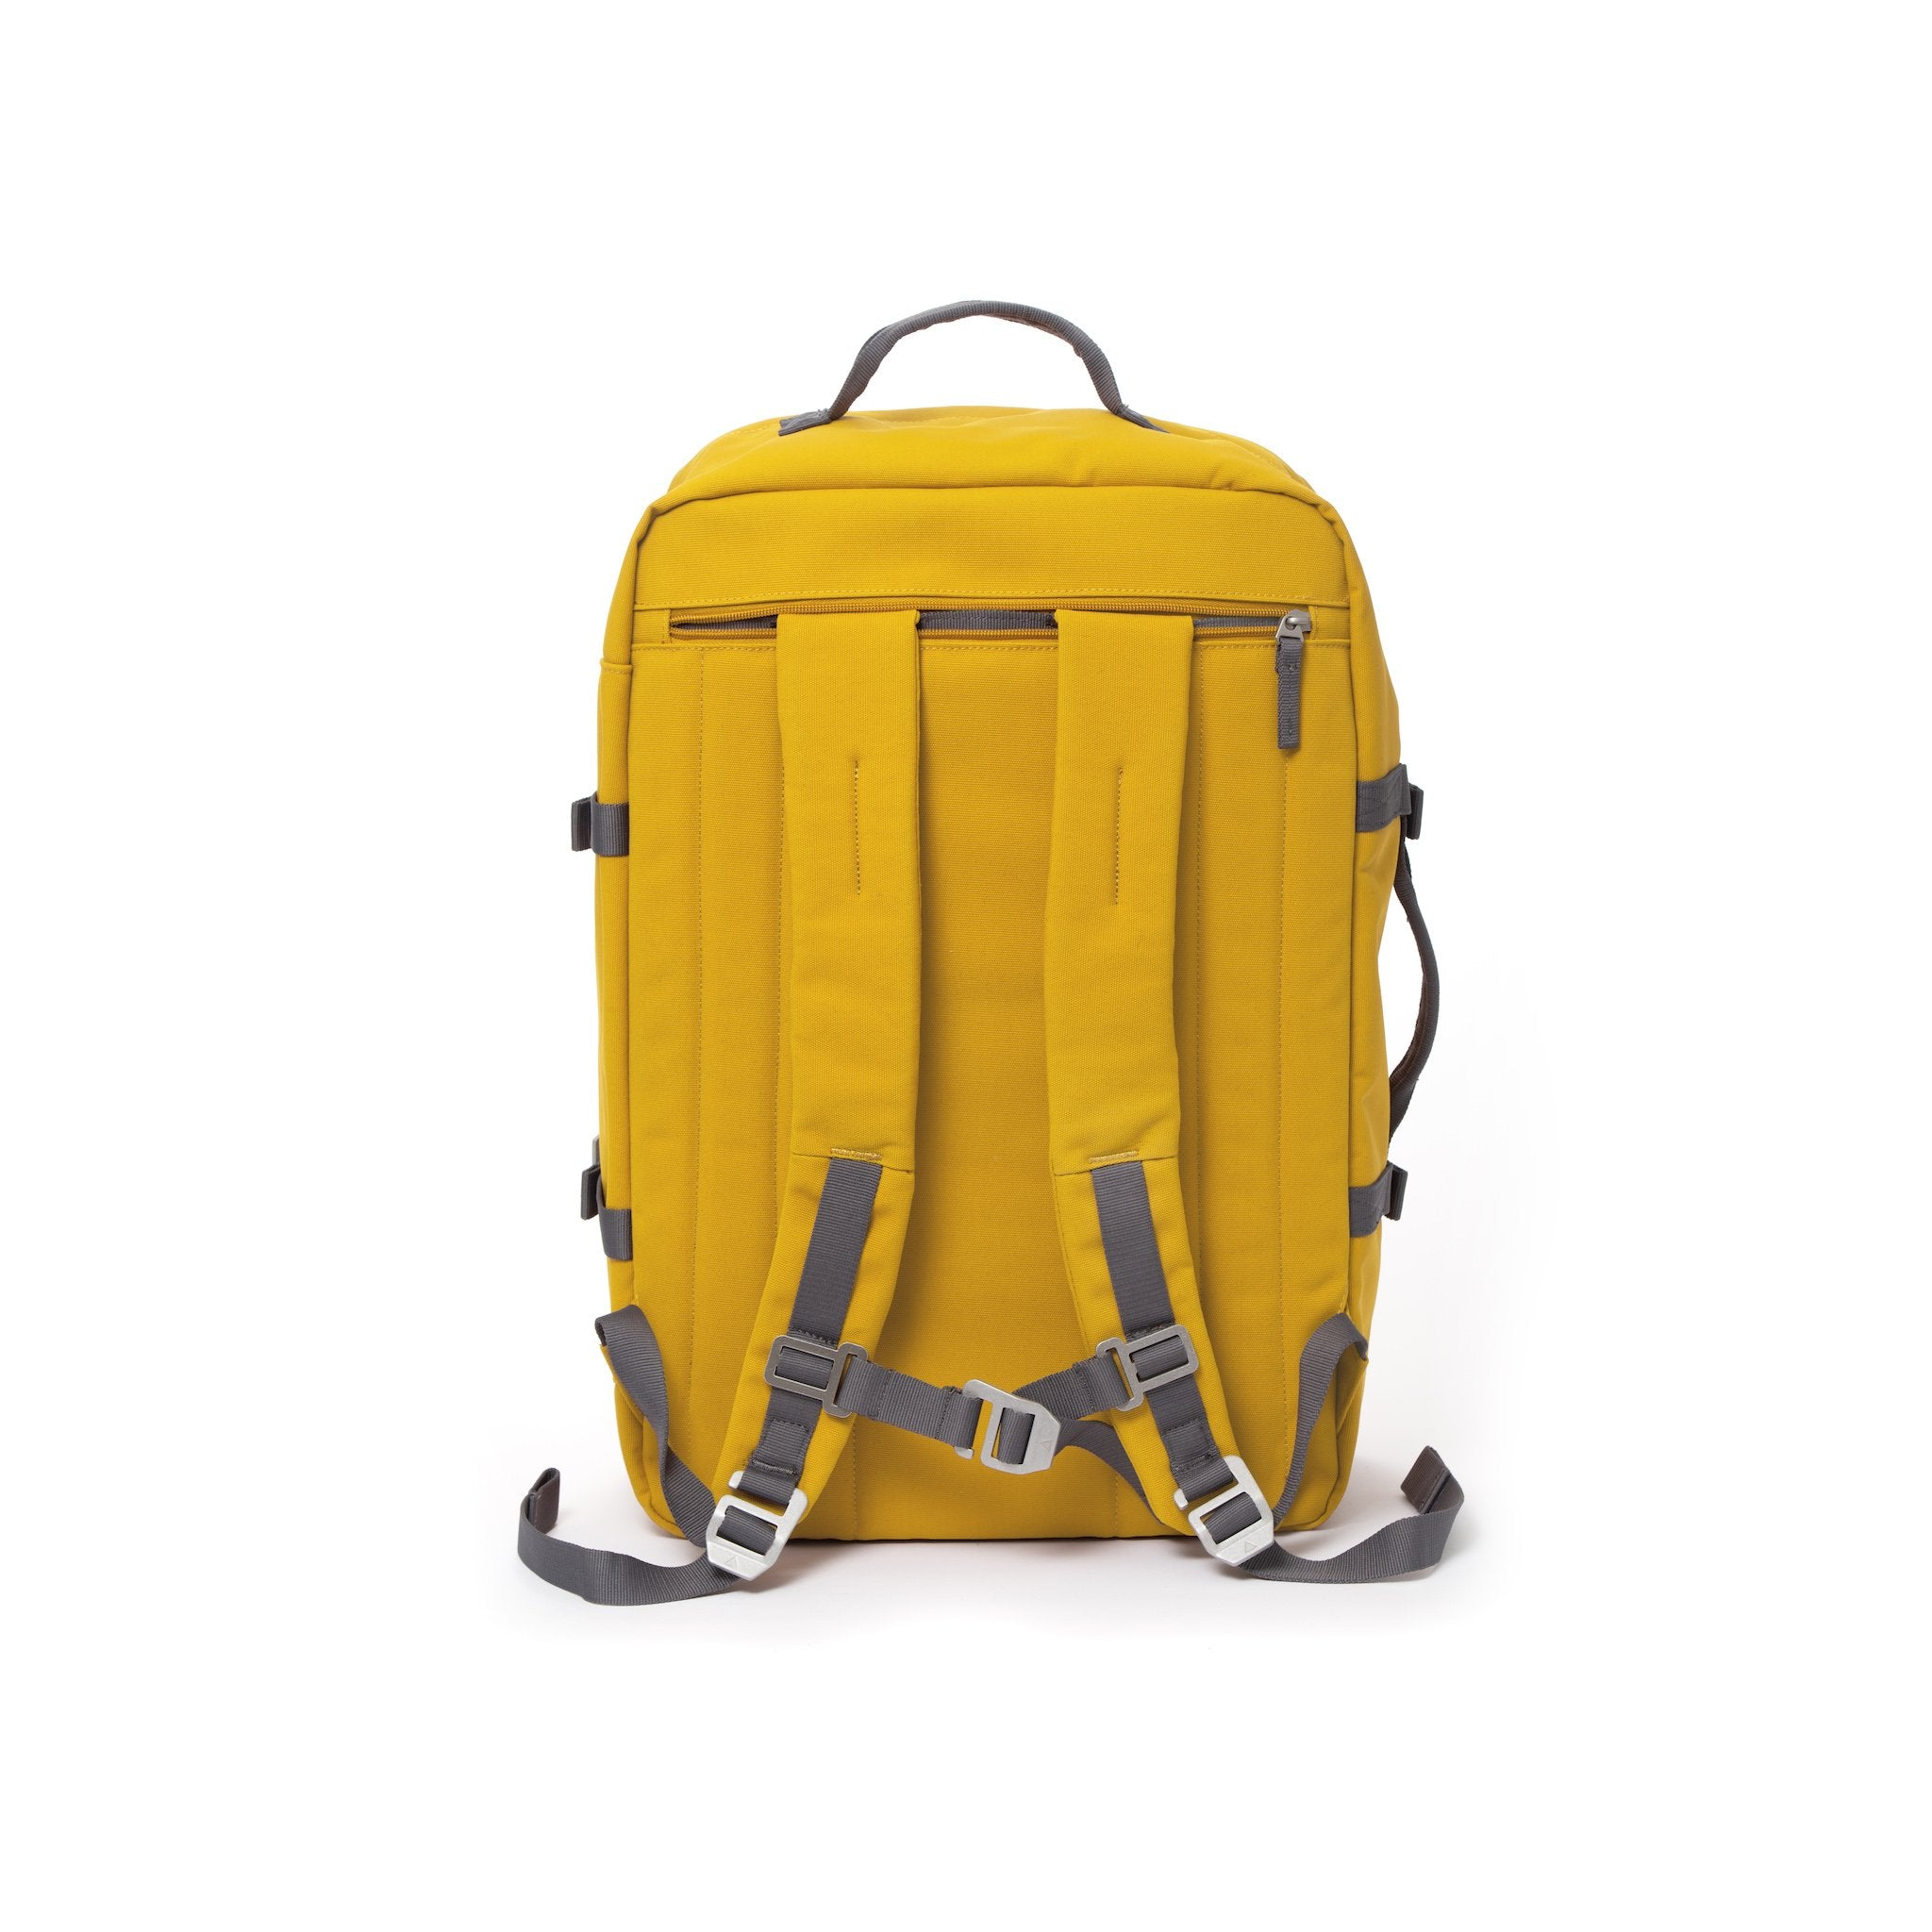 Yellow travel backpack with padded shoulder straps.